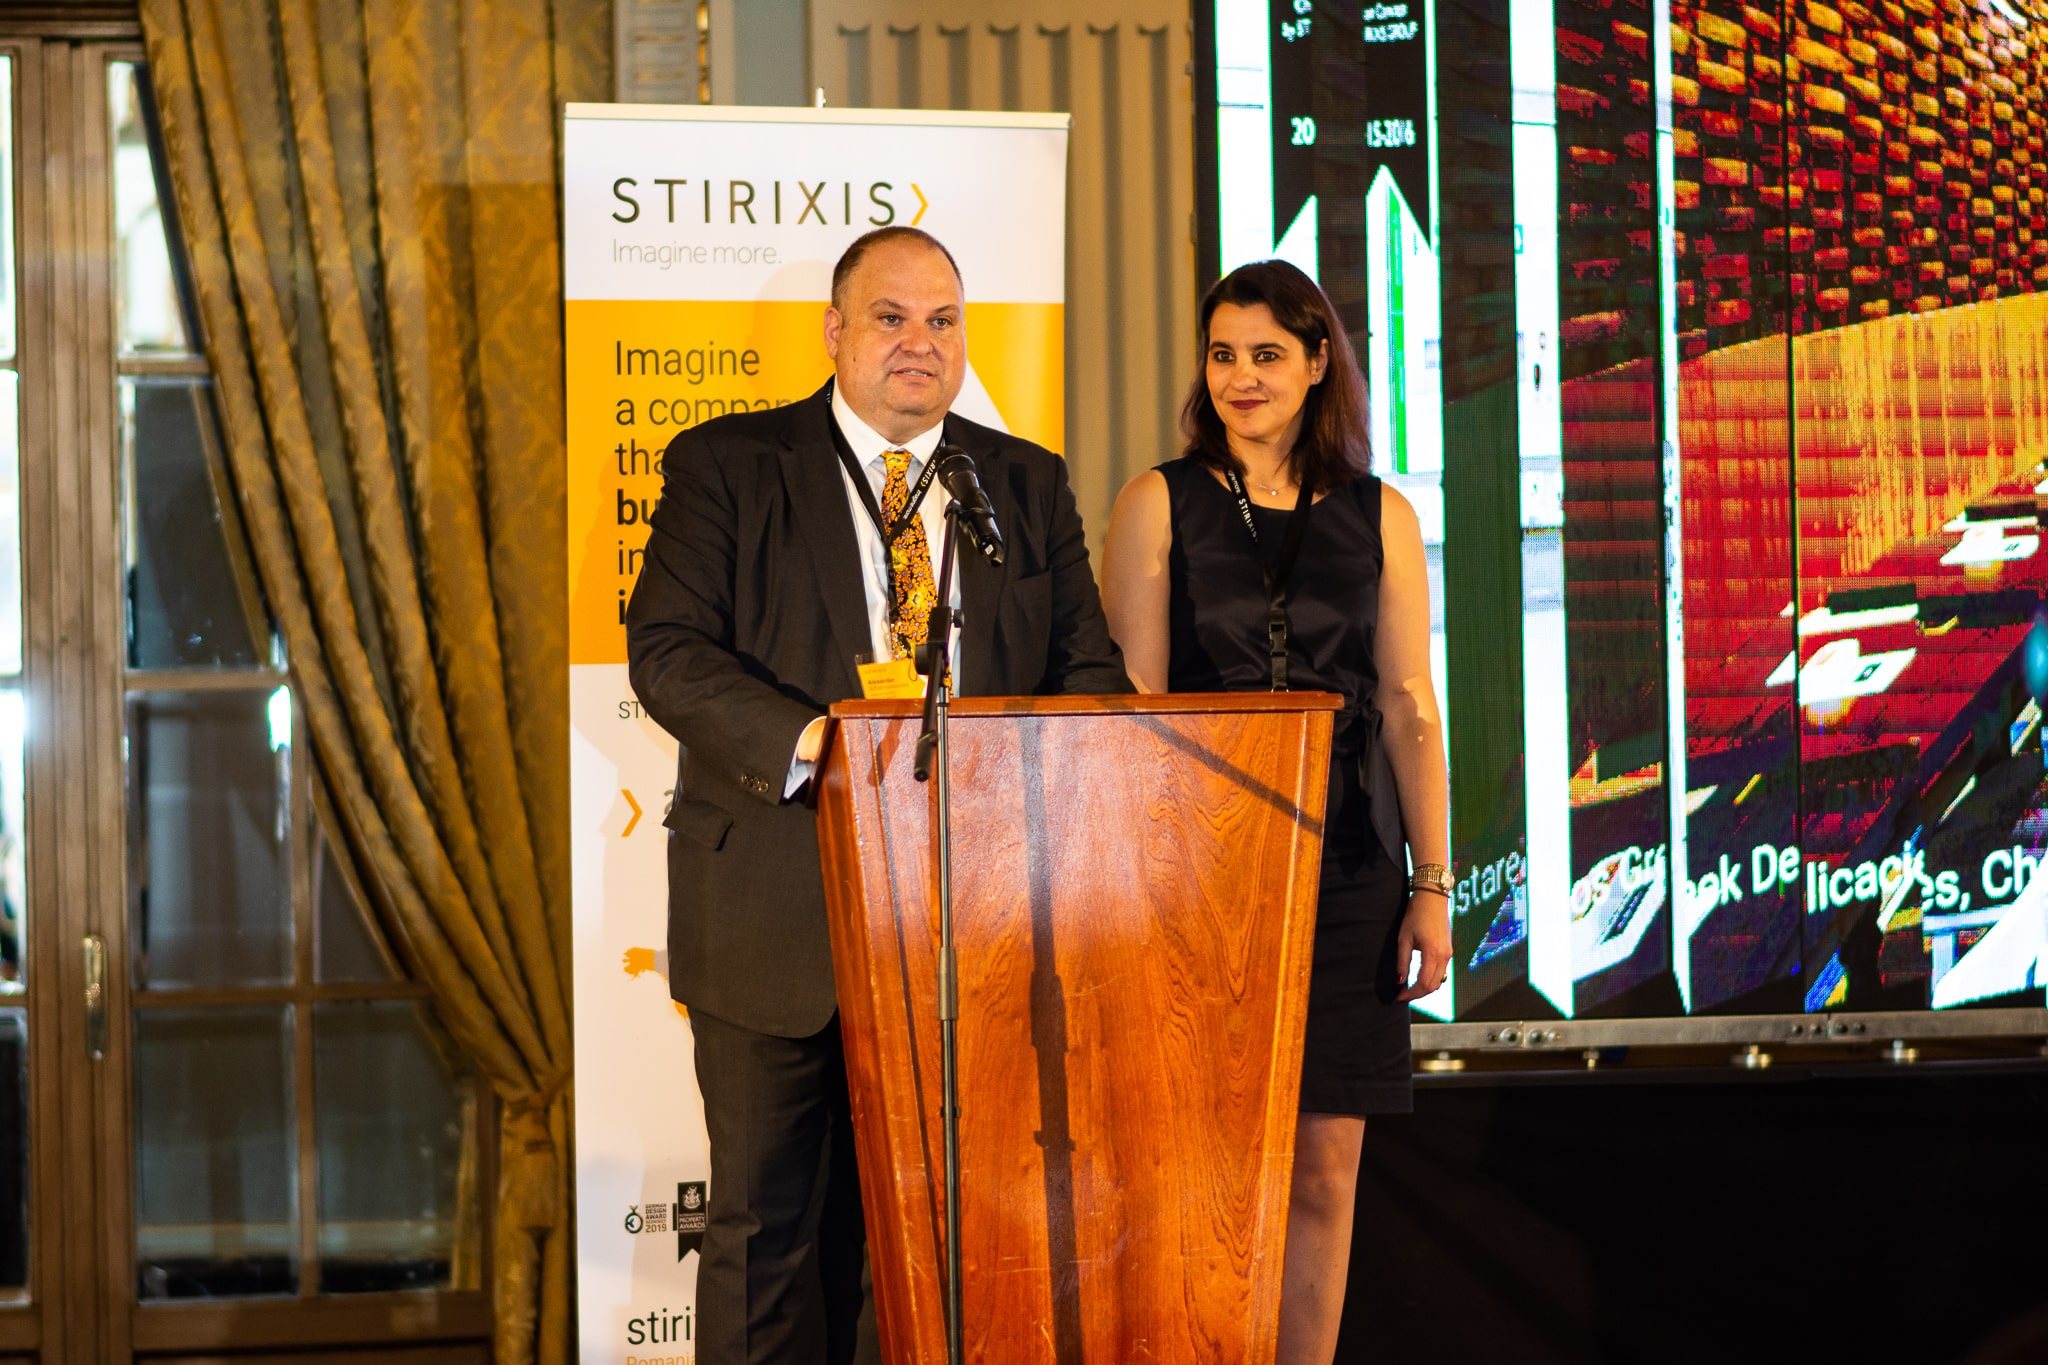 STIRIXIS Group celebrates its greatest projects realised by our Romanian Team in 2018.